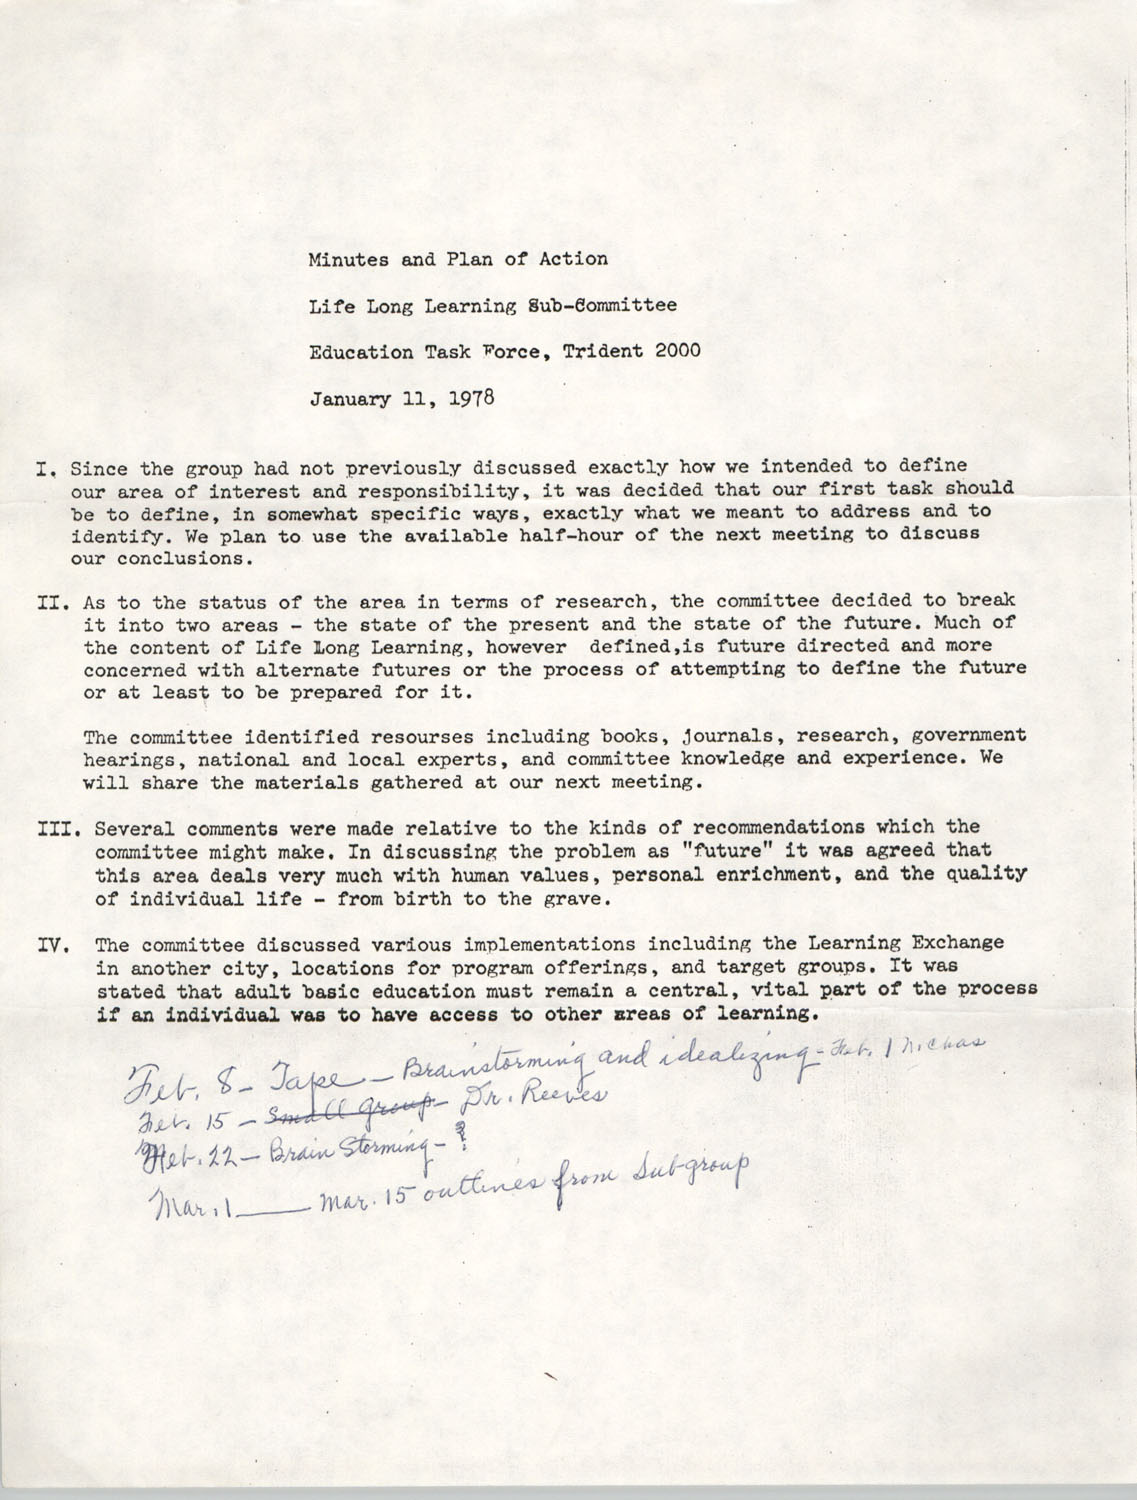 Minutes and Plan of Action at Life Long Learning Sub-Committee Education Task Force, January 11, 1978